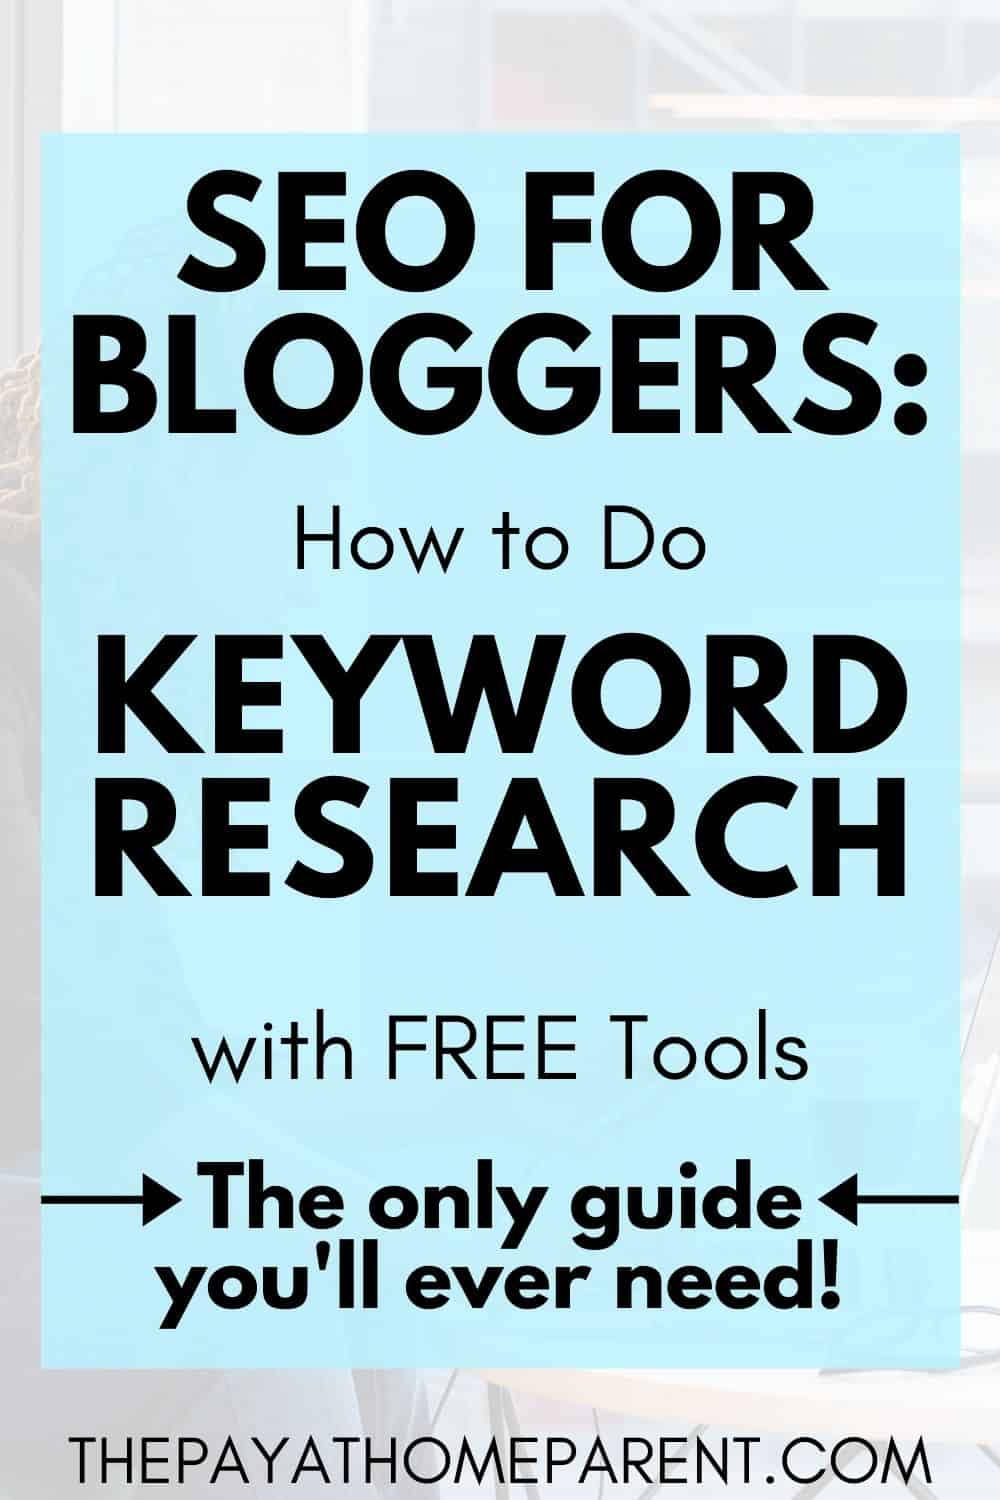 SEO for Bloggers How to Do Keyword Research